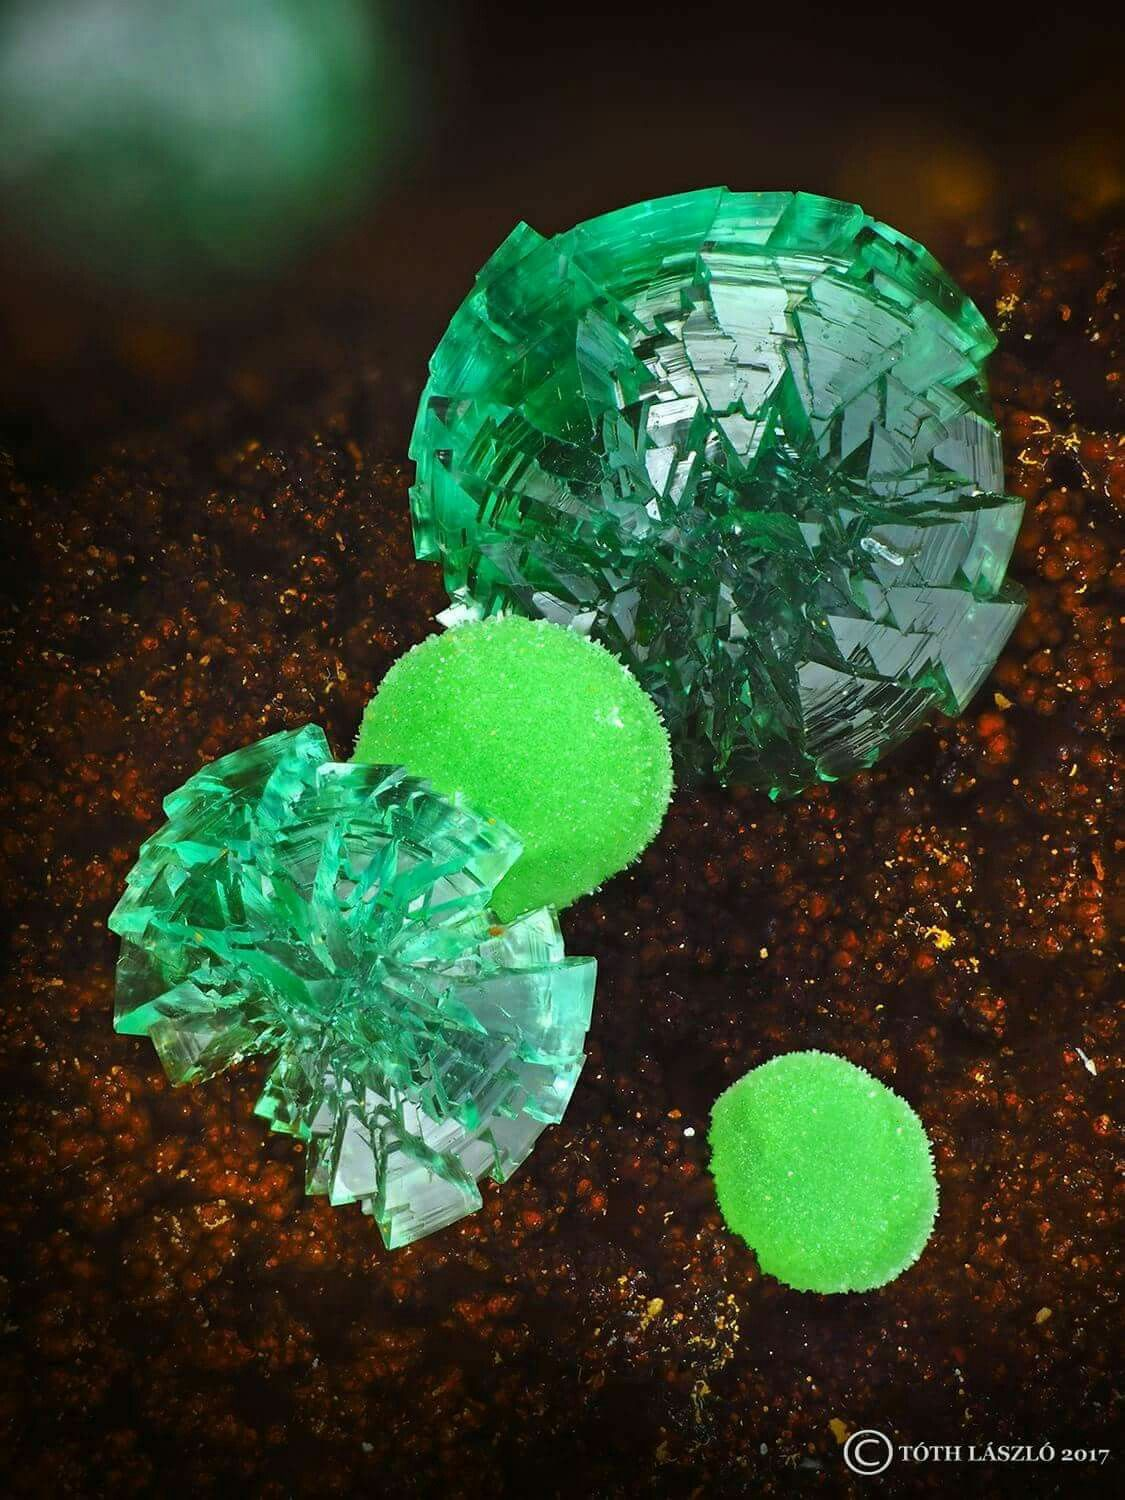 Back to my friend Vasilis Stergiou , who collected this beauty. Conichalcite with cuprian adamite from Kamariza ( Lavrio; Greece ). FOV 1,6mm. Photo credit: László Toth ©